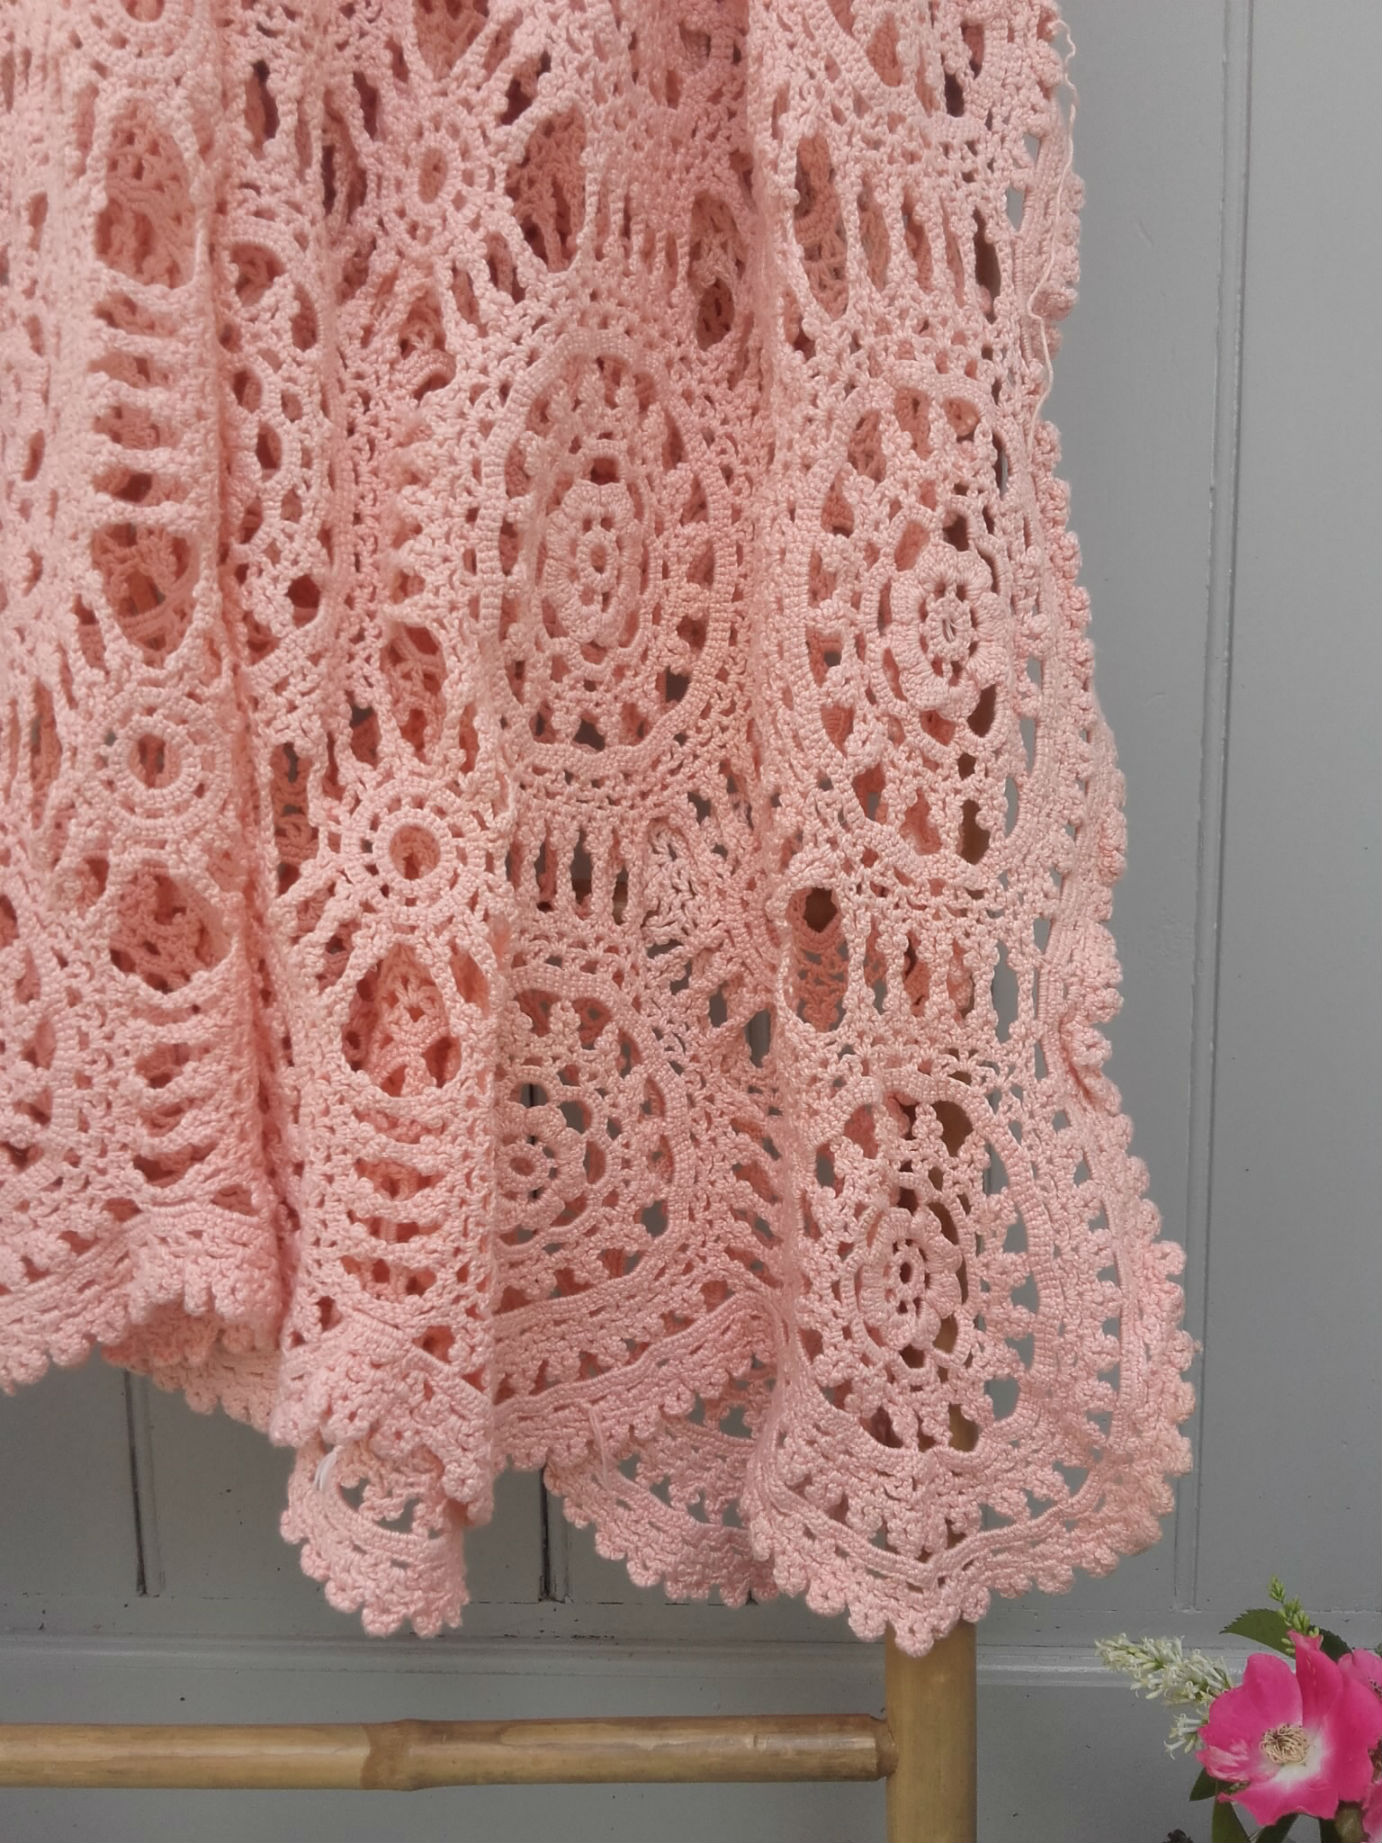 couvre lit crochet en coton rose quiche lorraine vintage. Black Bedroom Furniture Sets. Home Design Ideas